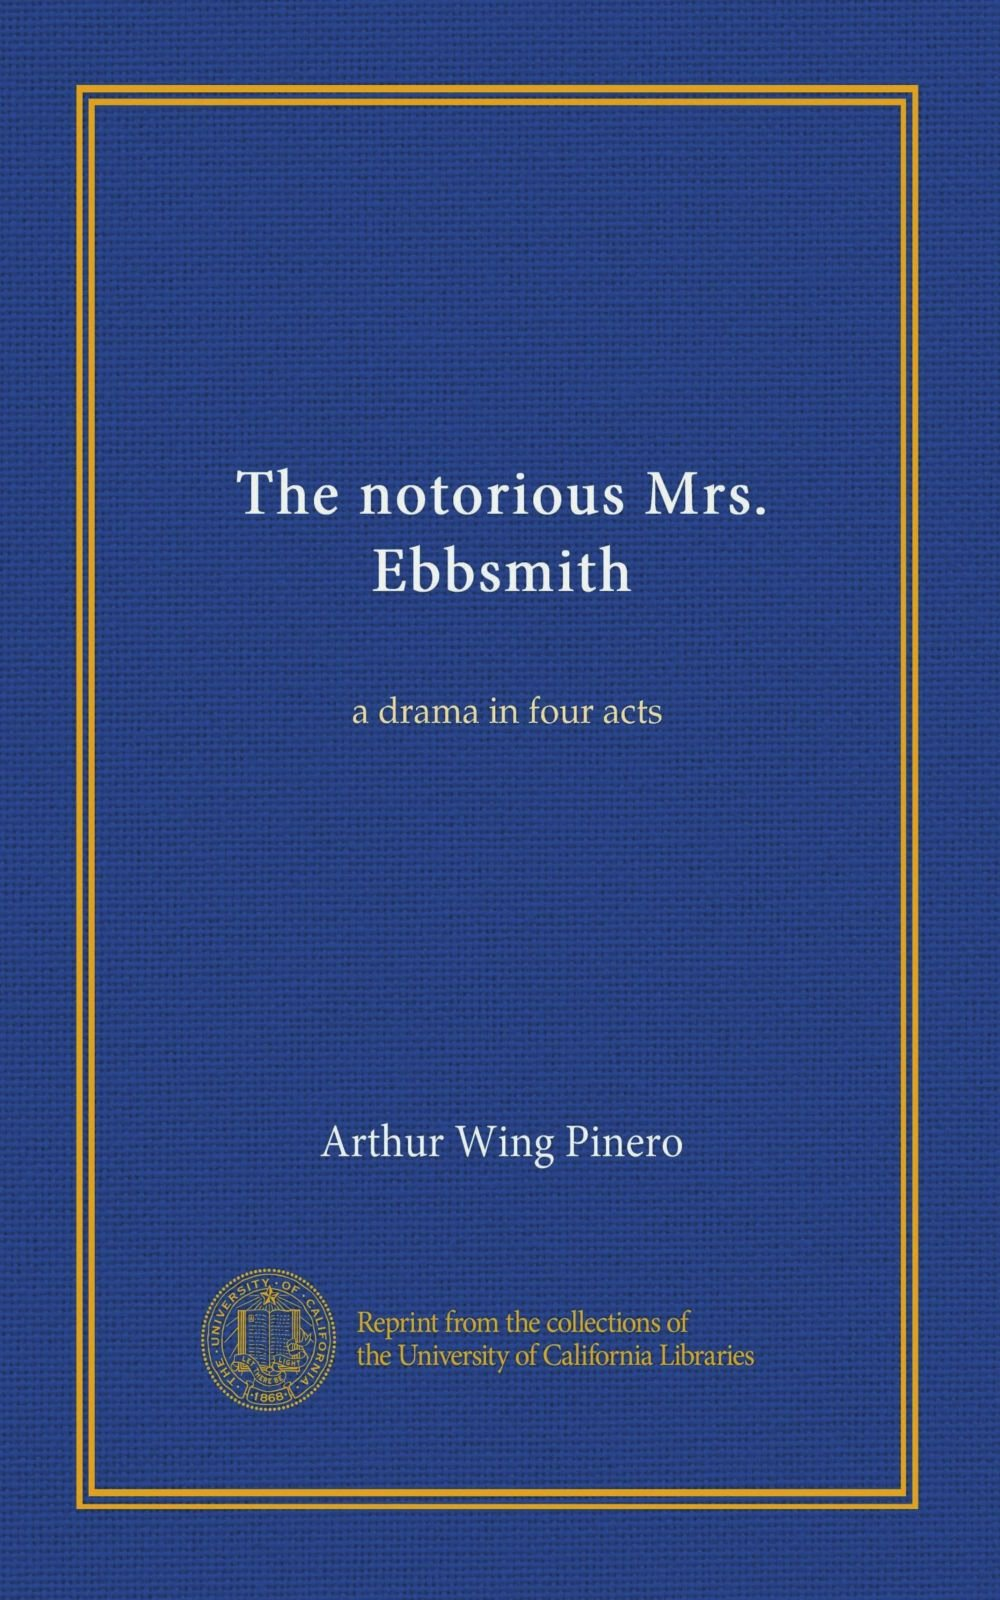 The notorious Mrs. Ebbsmith: a drama in four acts